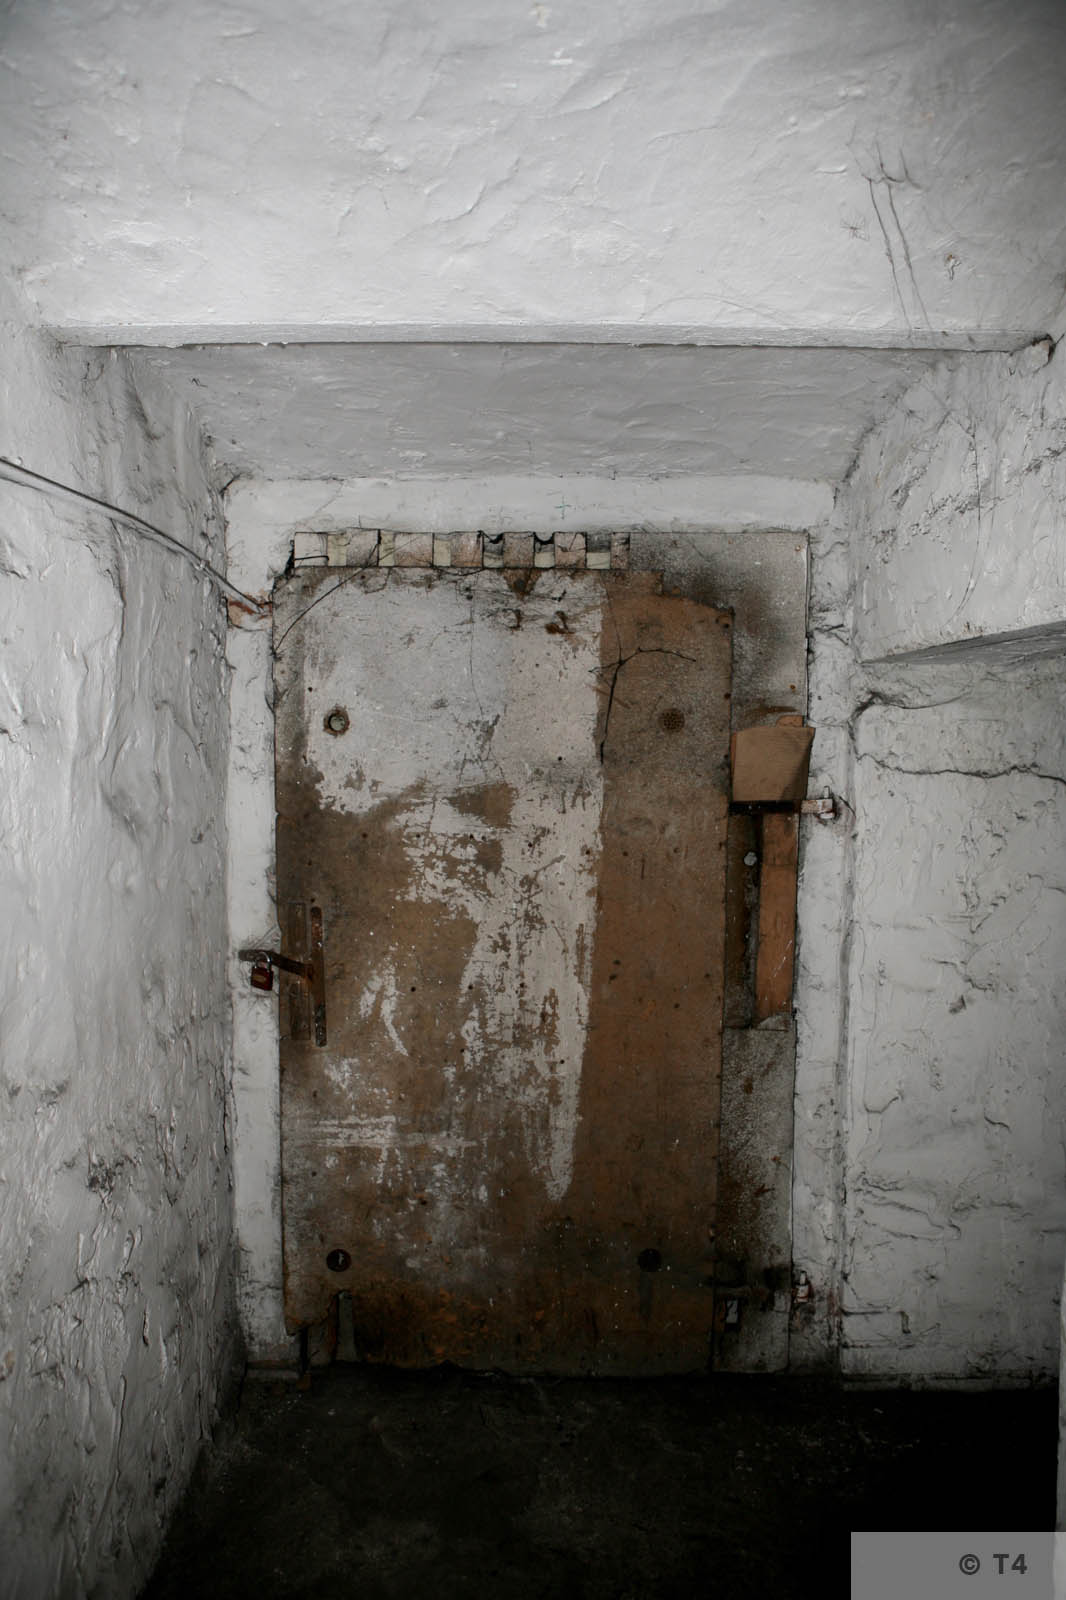 Former cells in the basement of the amdinistration building and prisoner accomodation. 2008 T4 4556